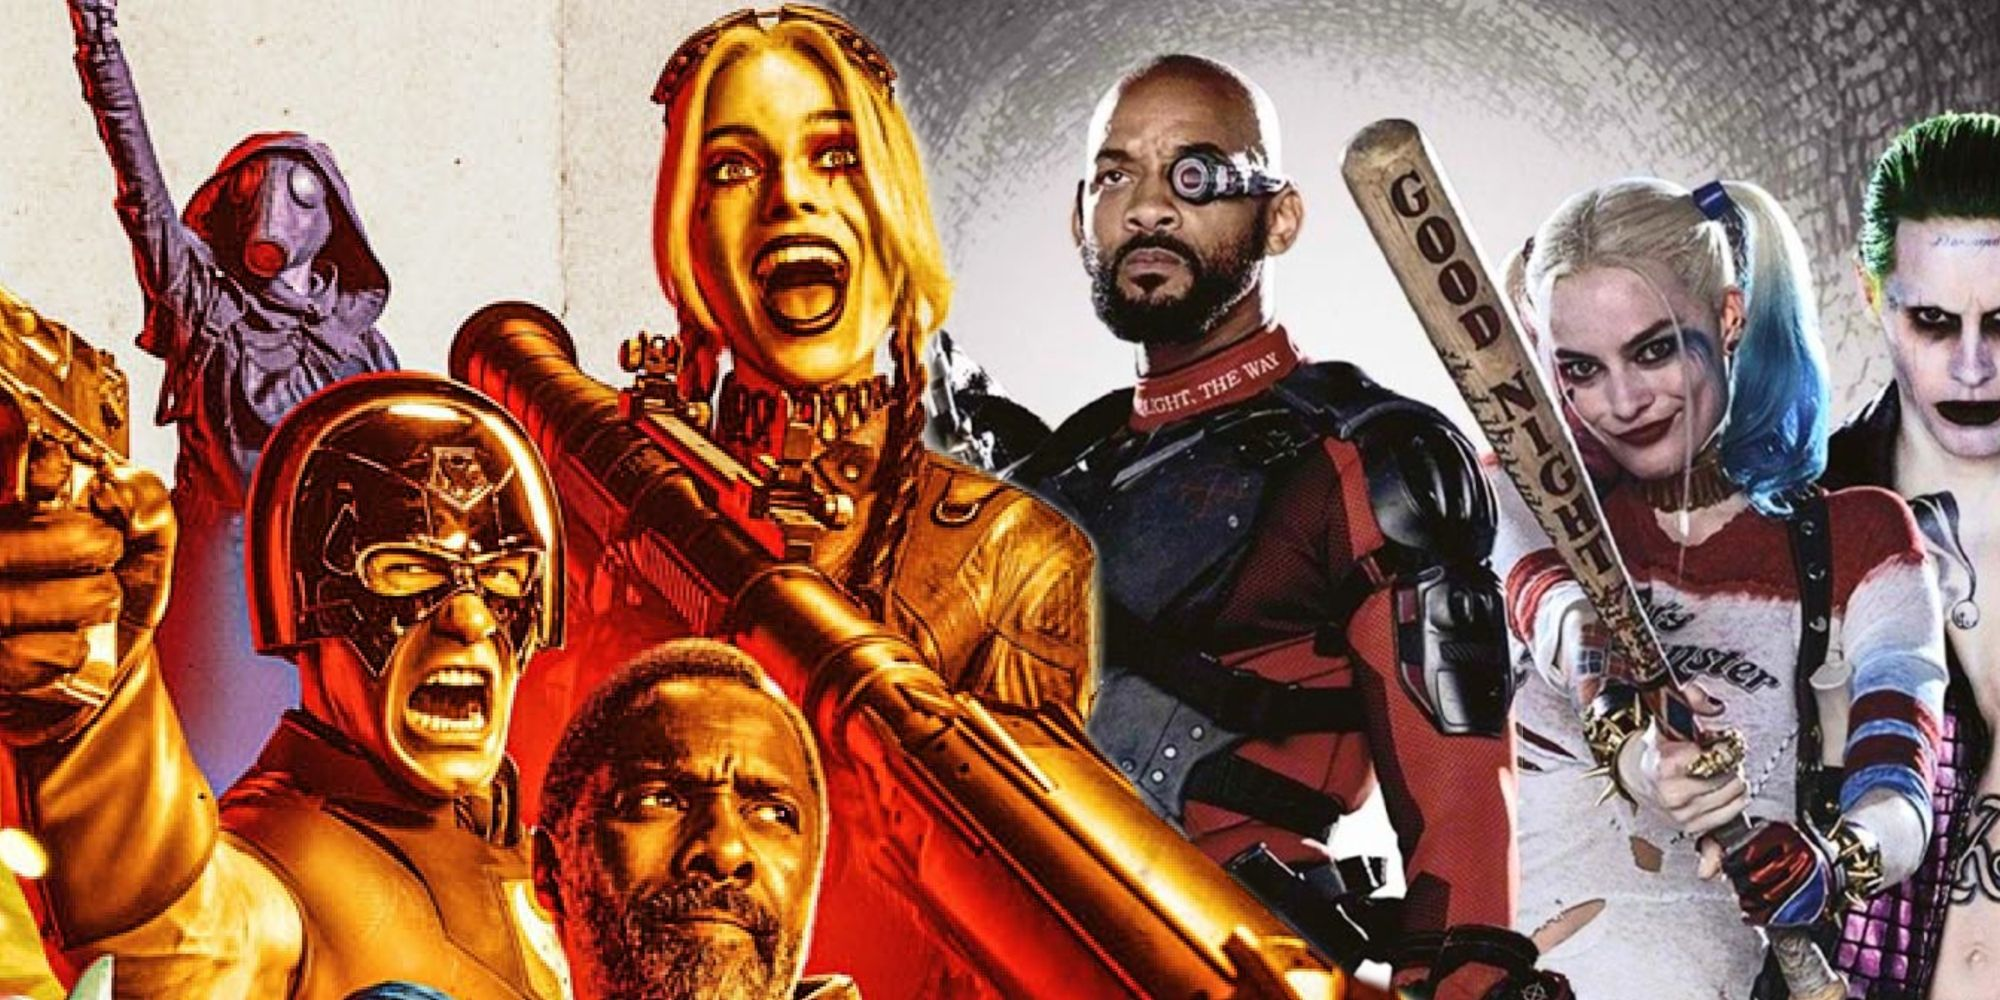 James Gunn Responds To Fan Pitting Suicide Squad 2 Against The Ayer Cut